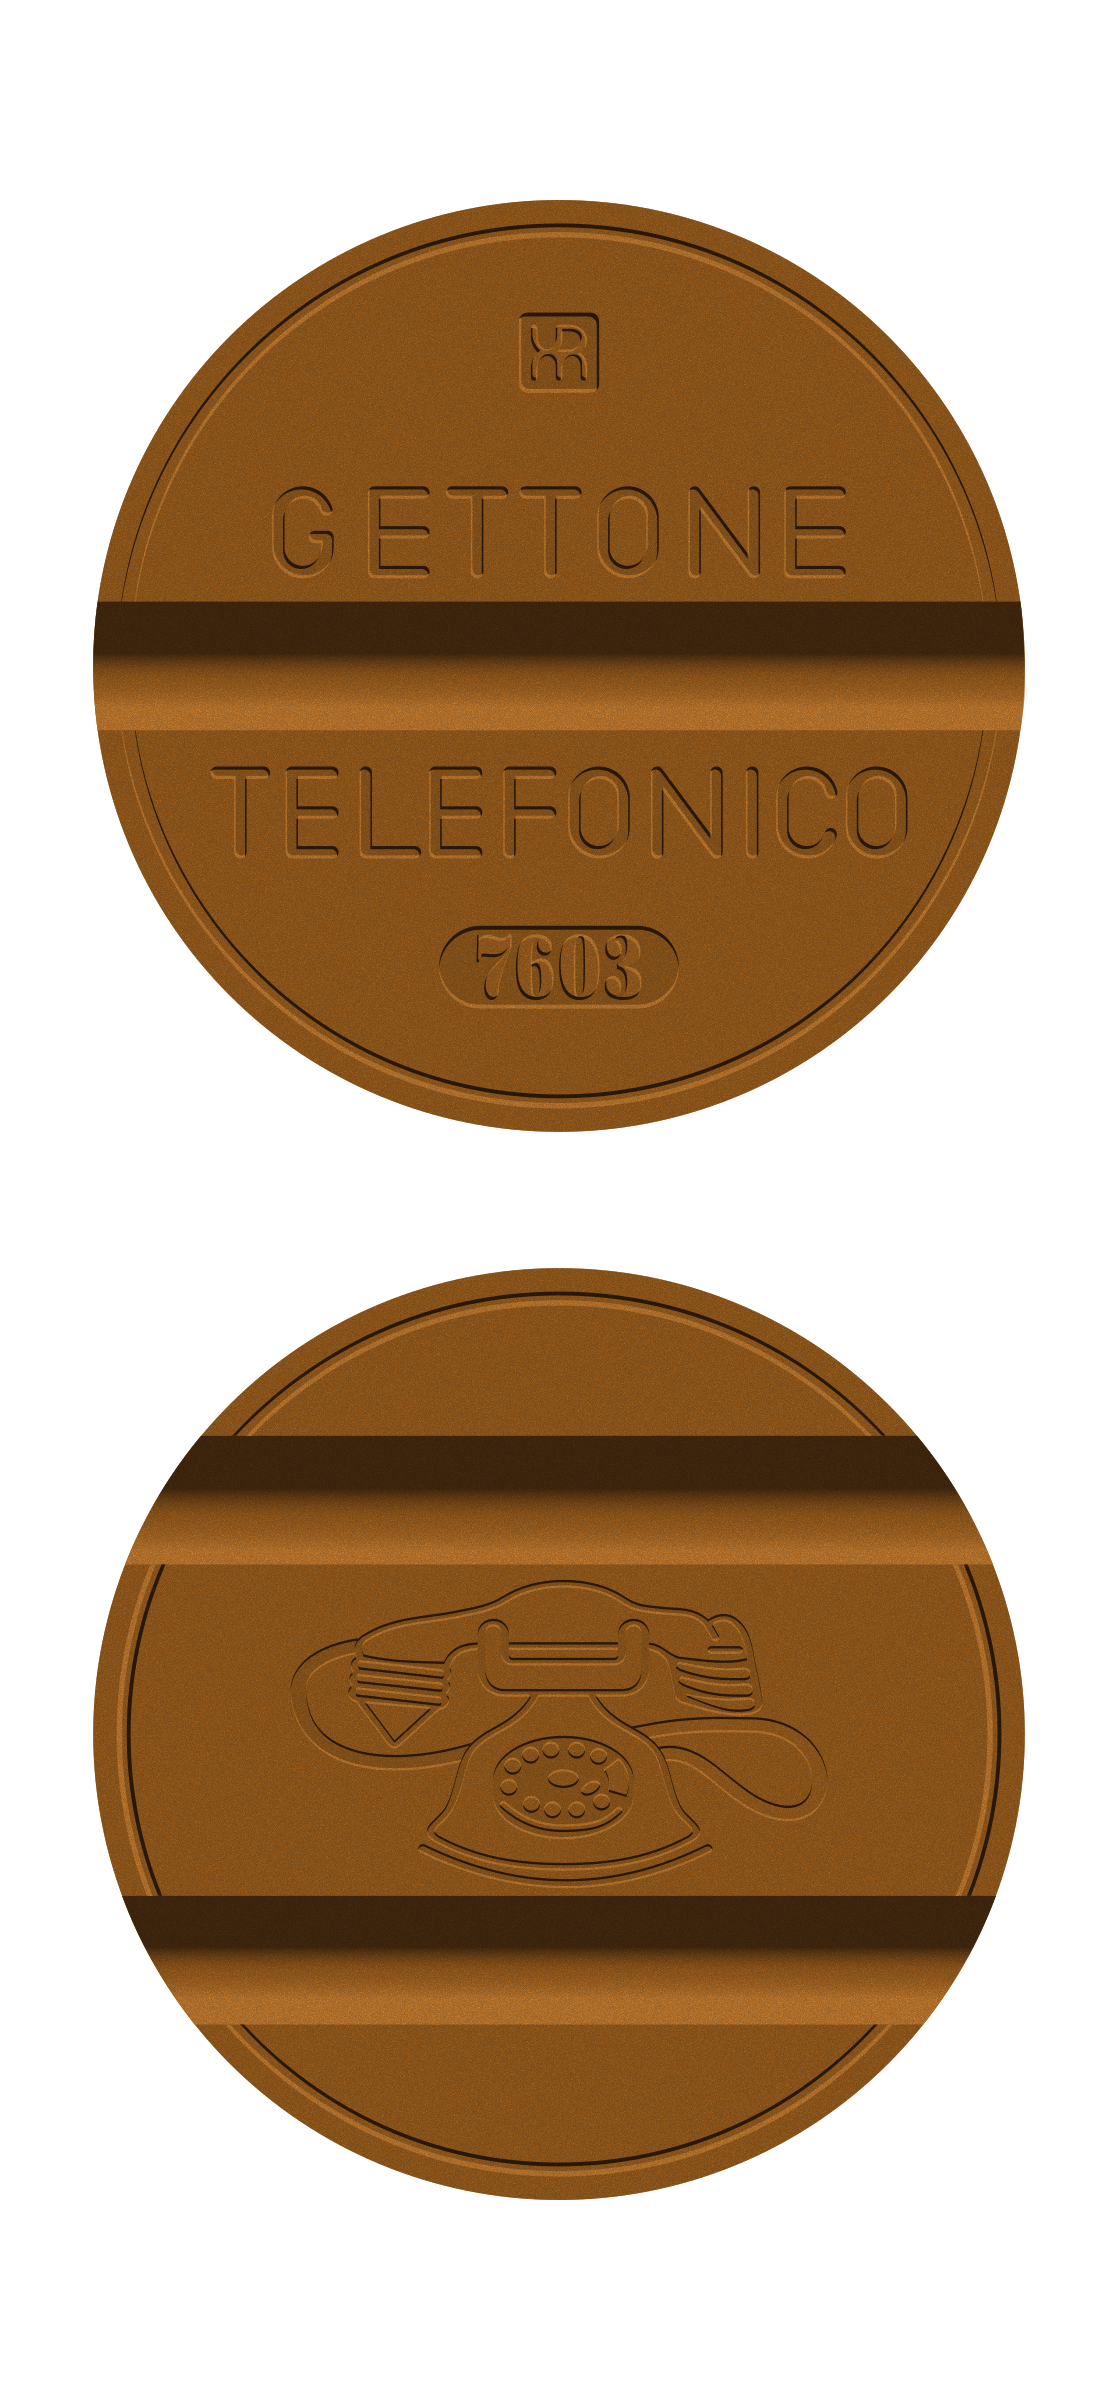 Telephone token by conte magnus